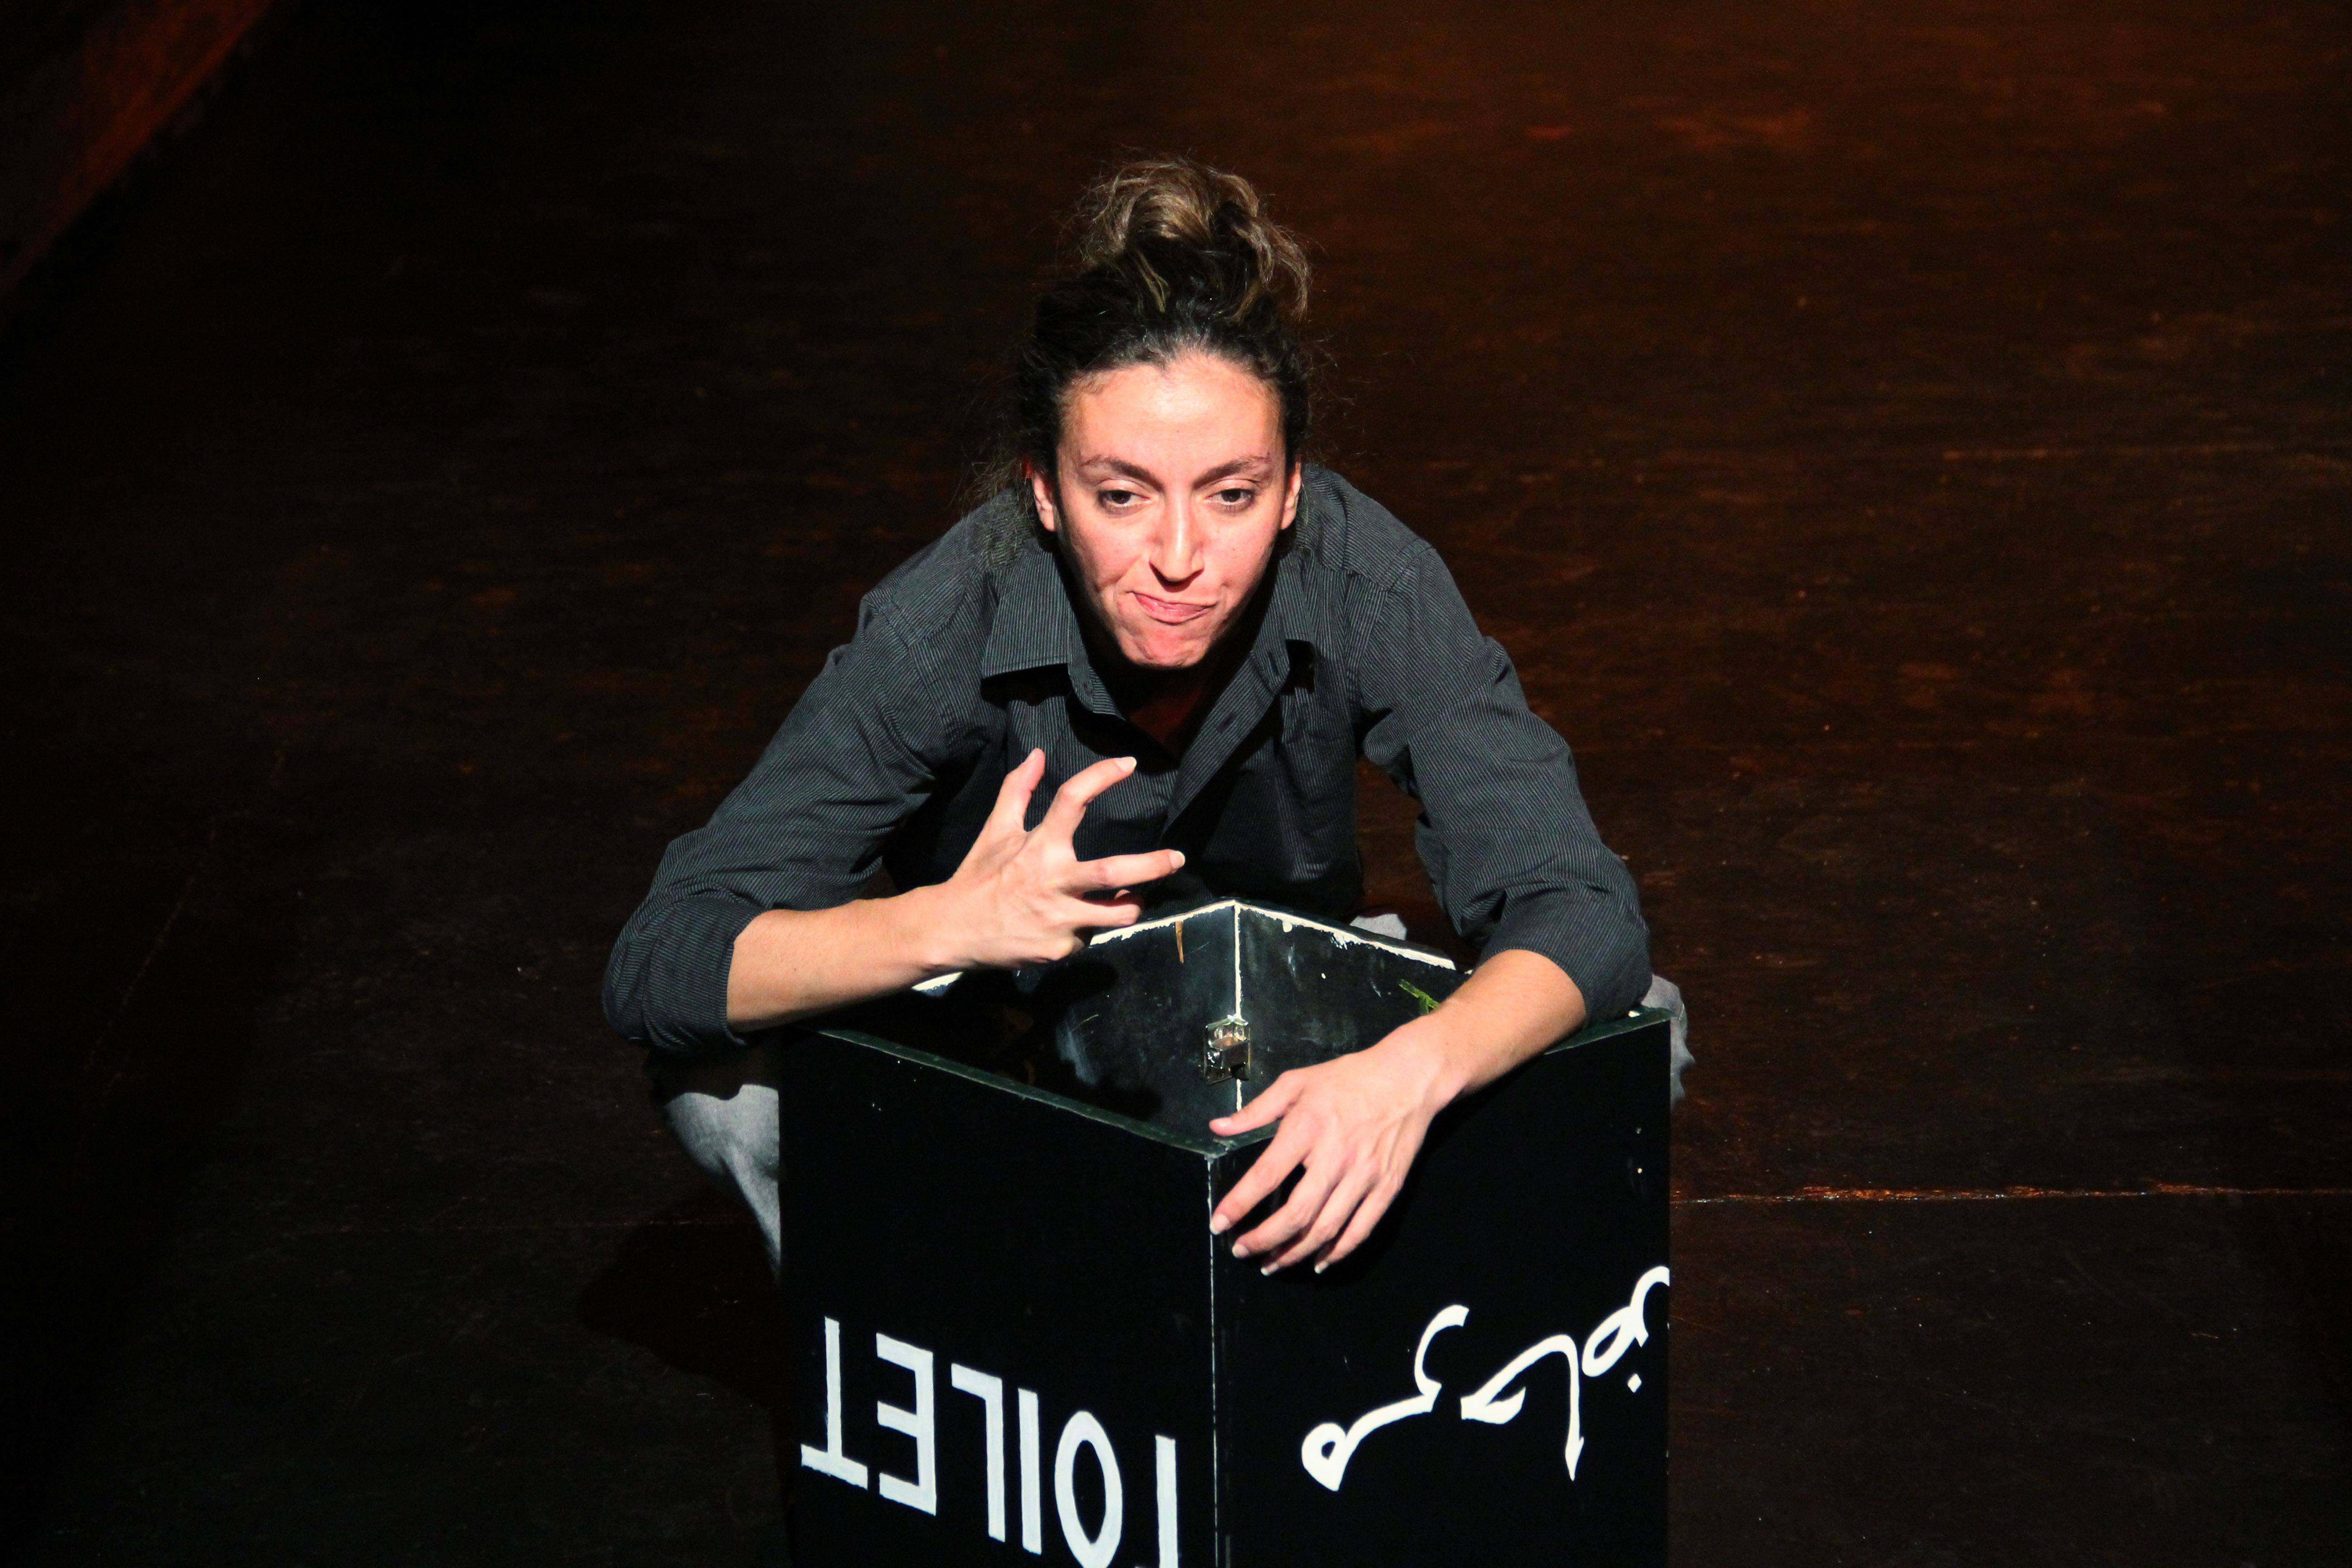 performer crouching over a box